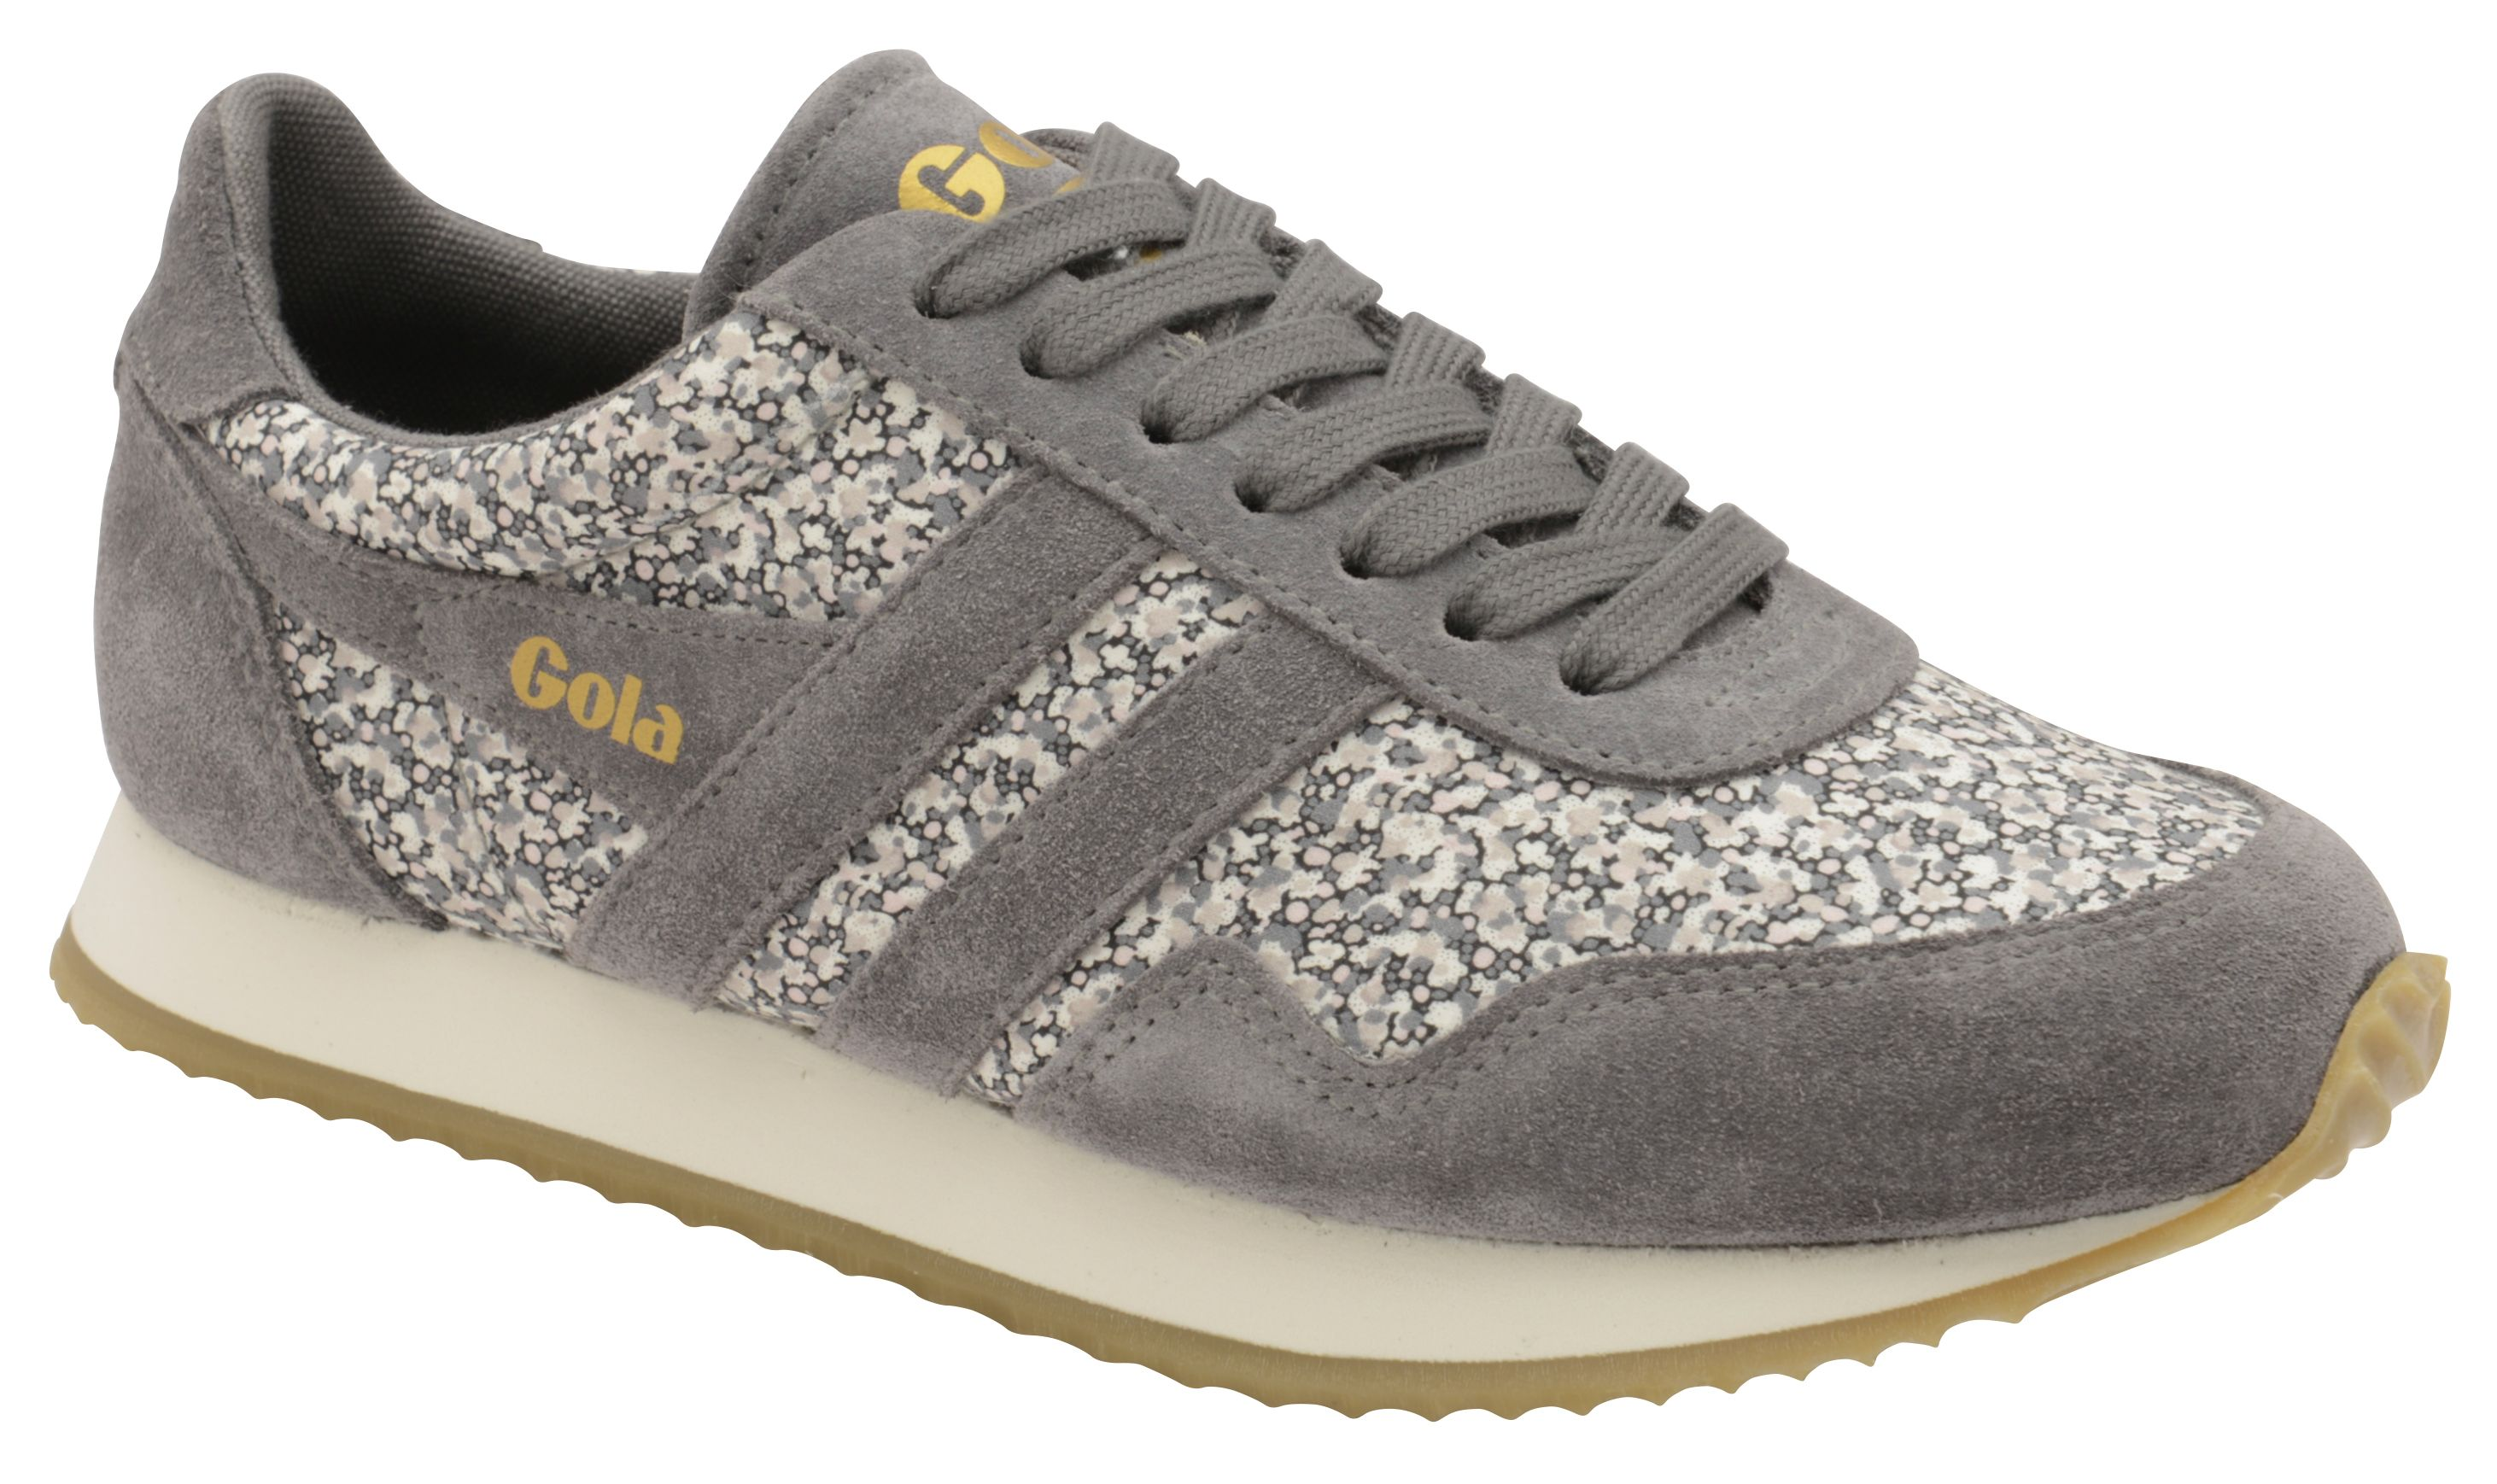 Gola Spirit Liberty Pp Lace Up Trainers, Grey